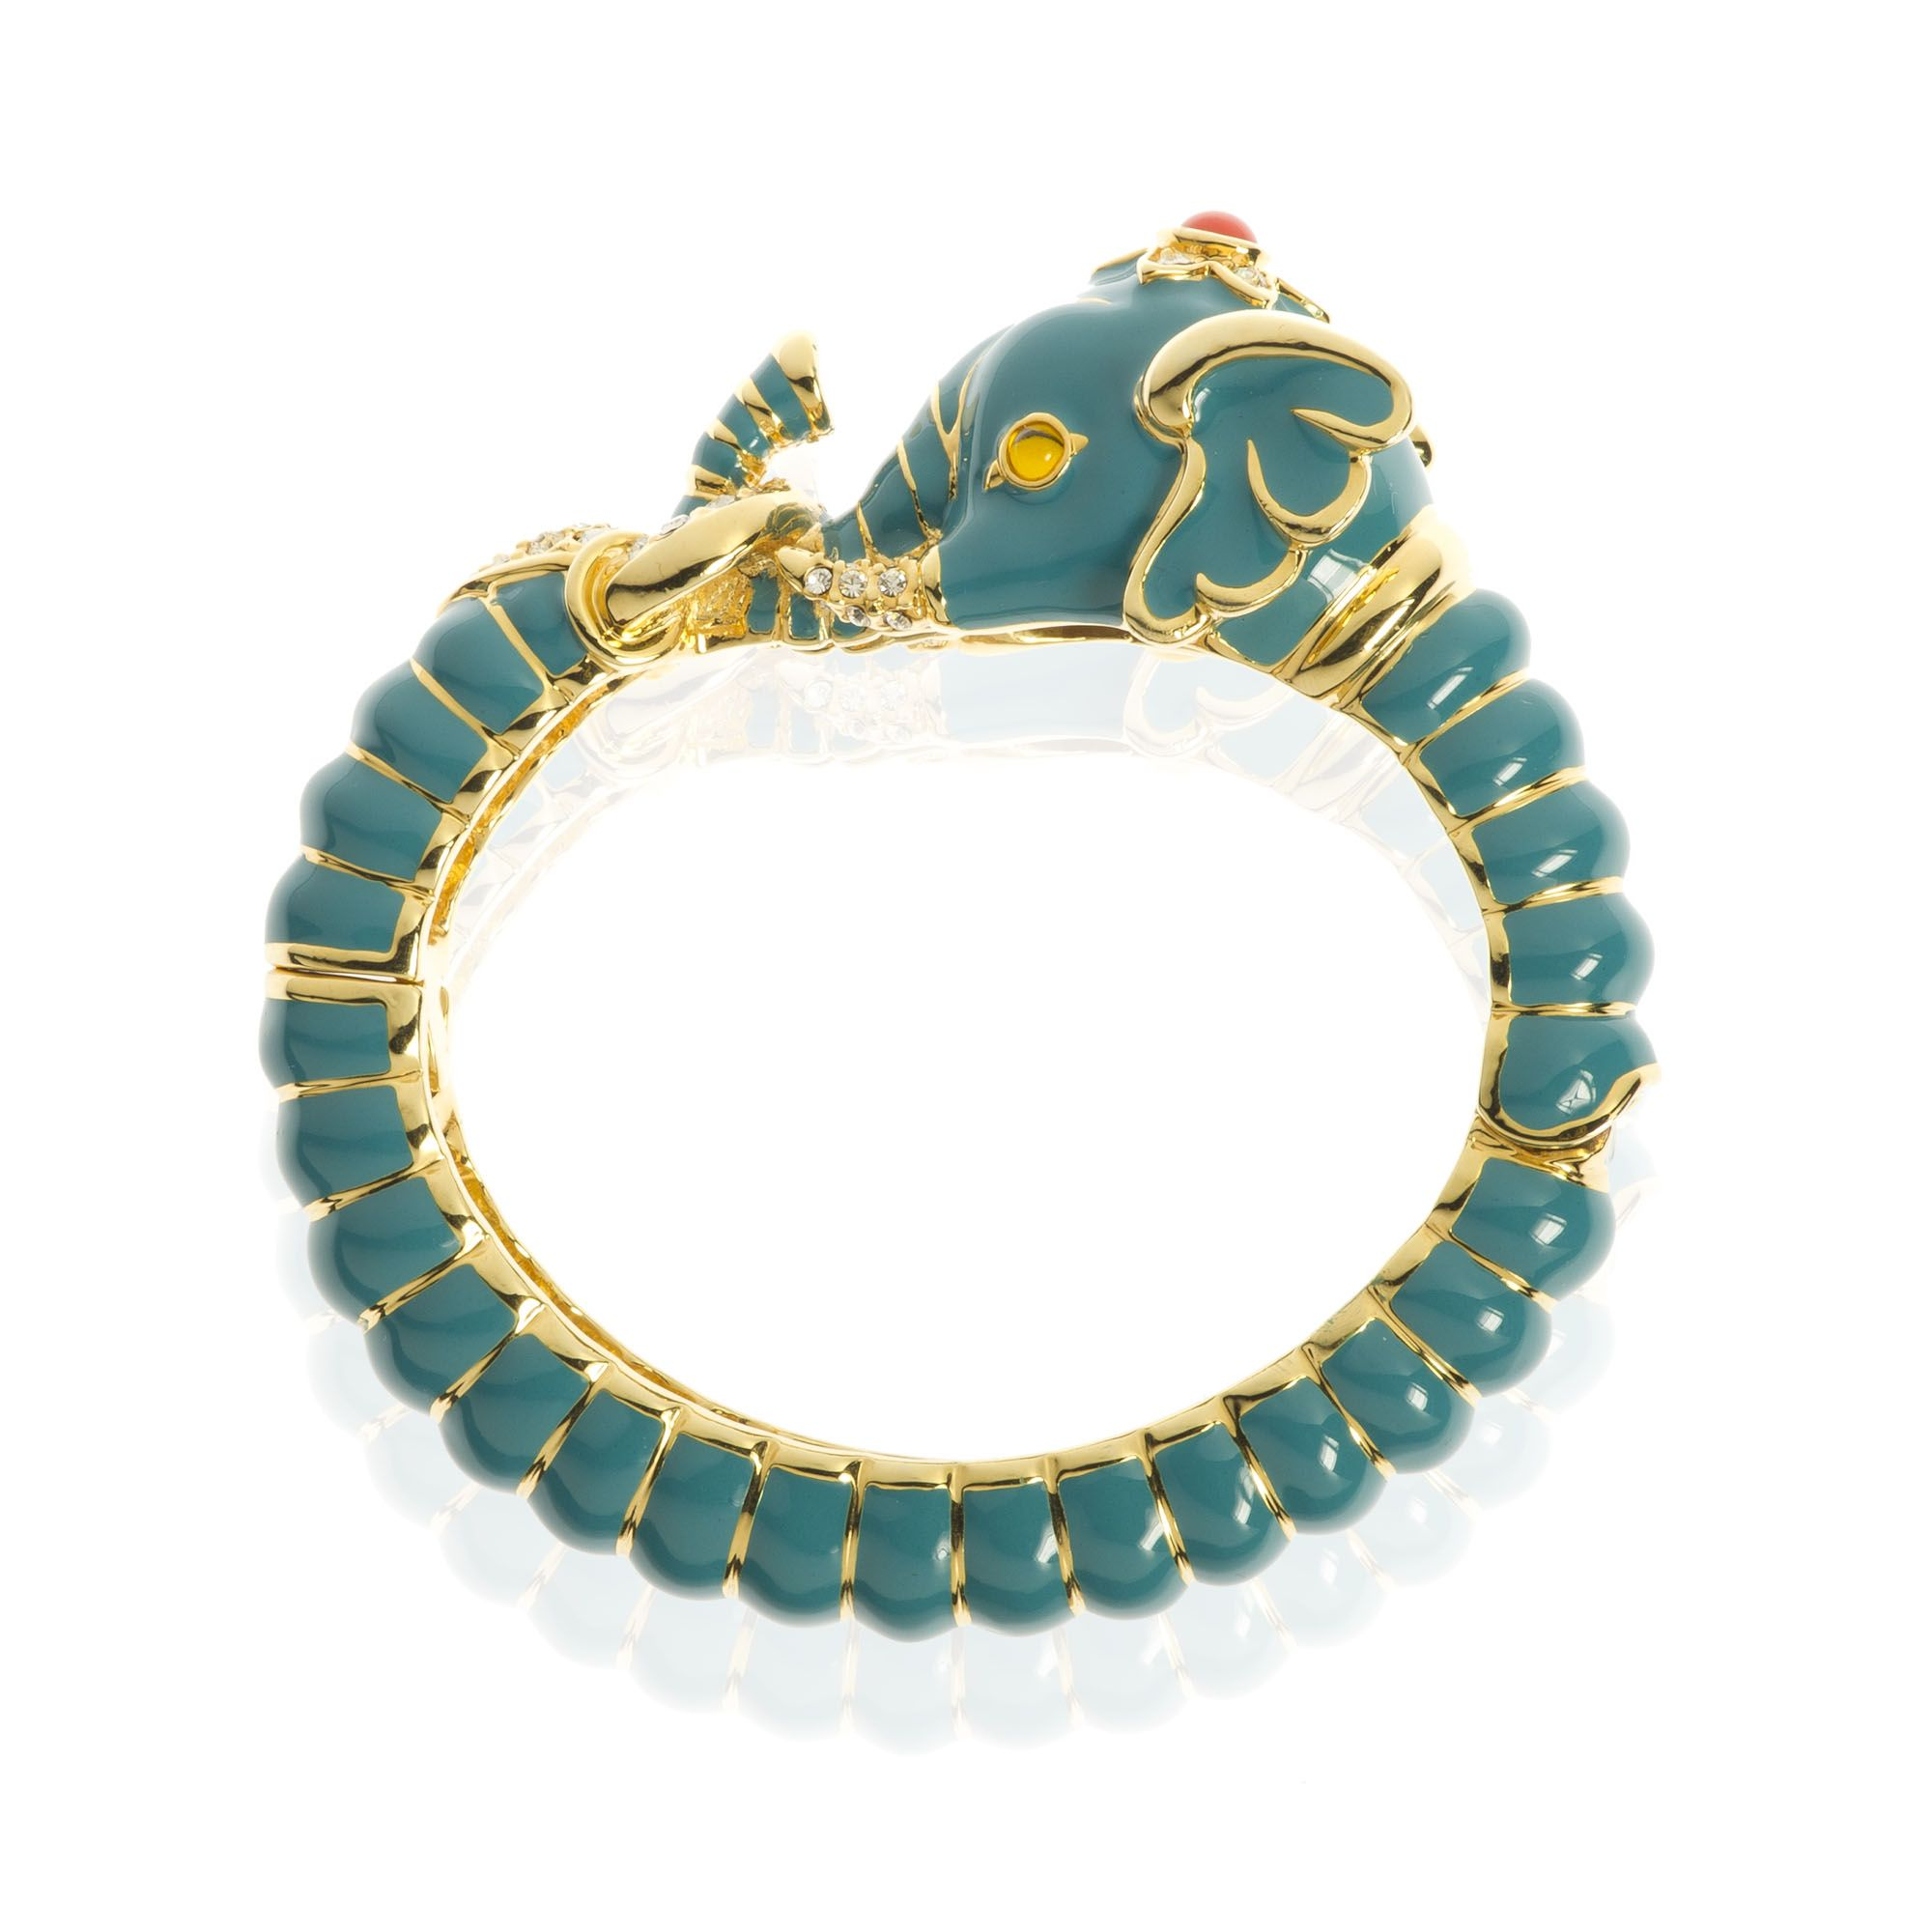 KJL by Kenneth Jay Lane Bracciale a elefante ottone placcato oro e smalto turchese